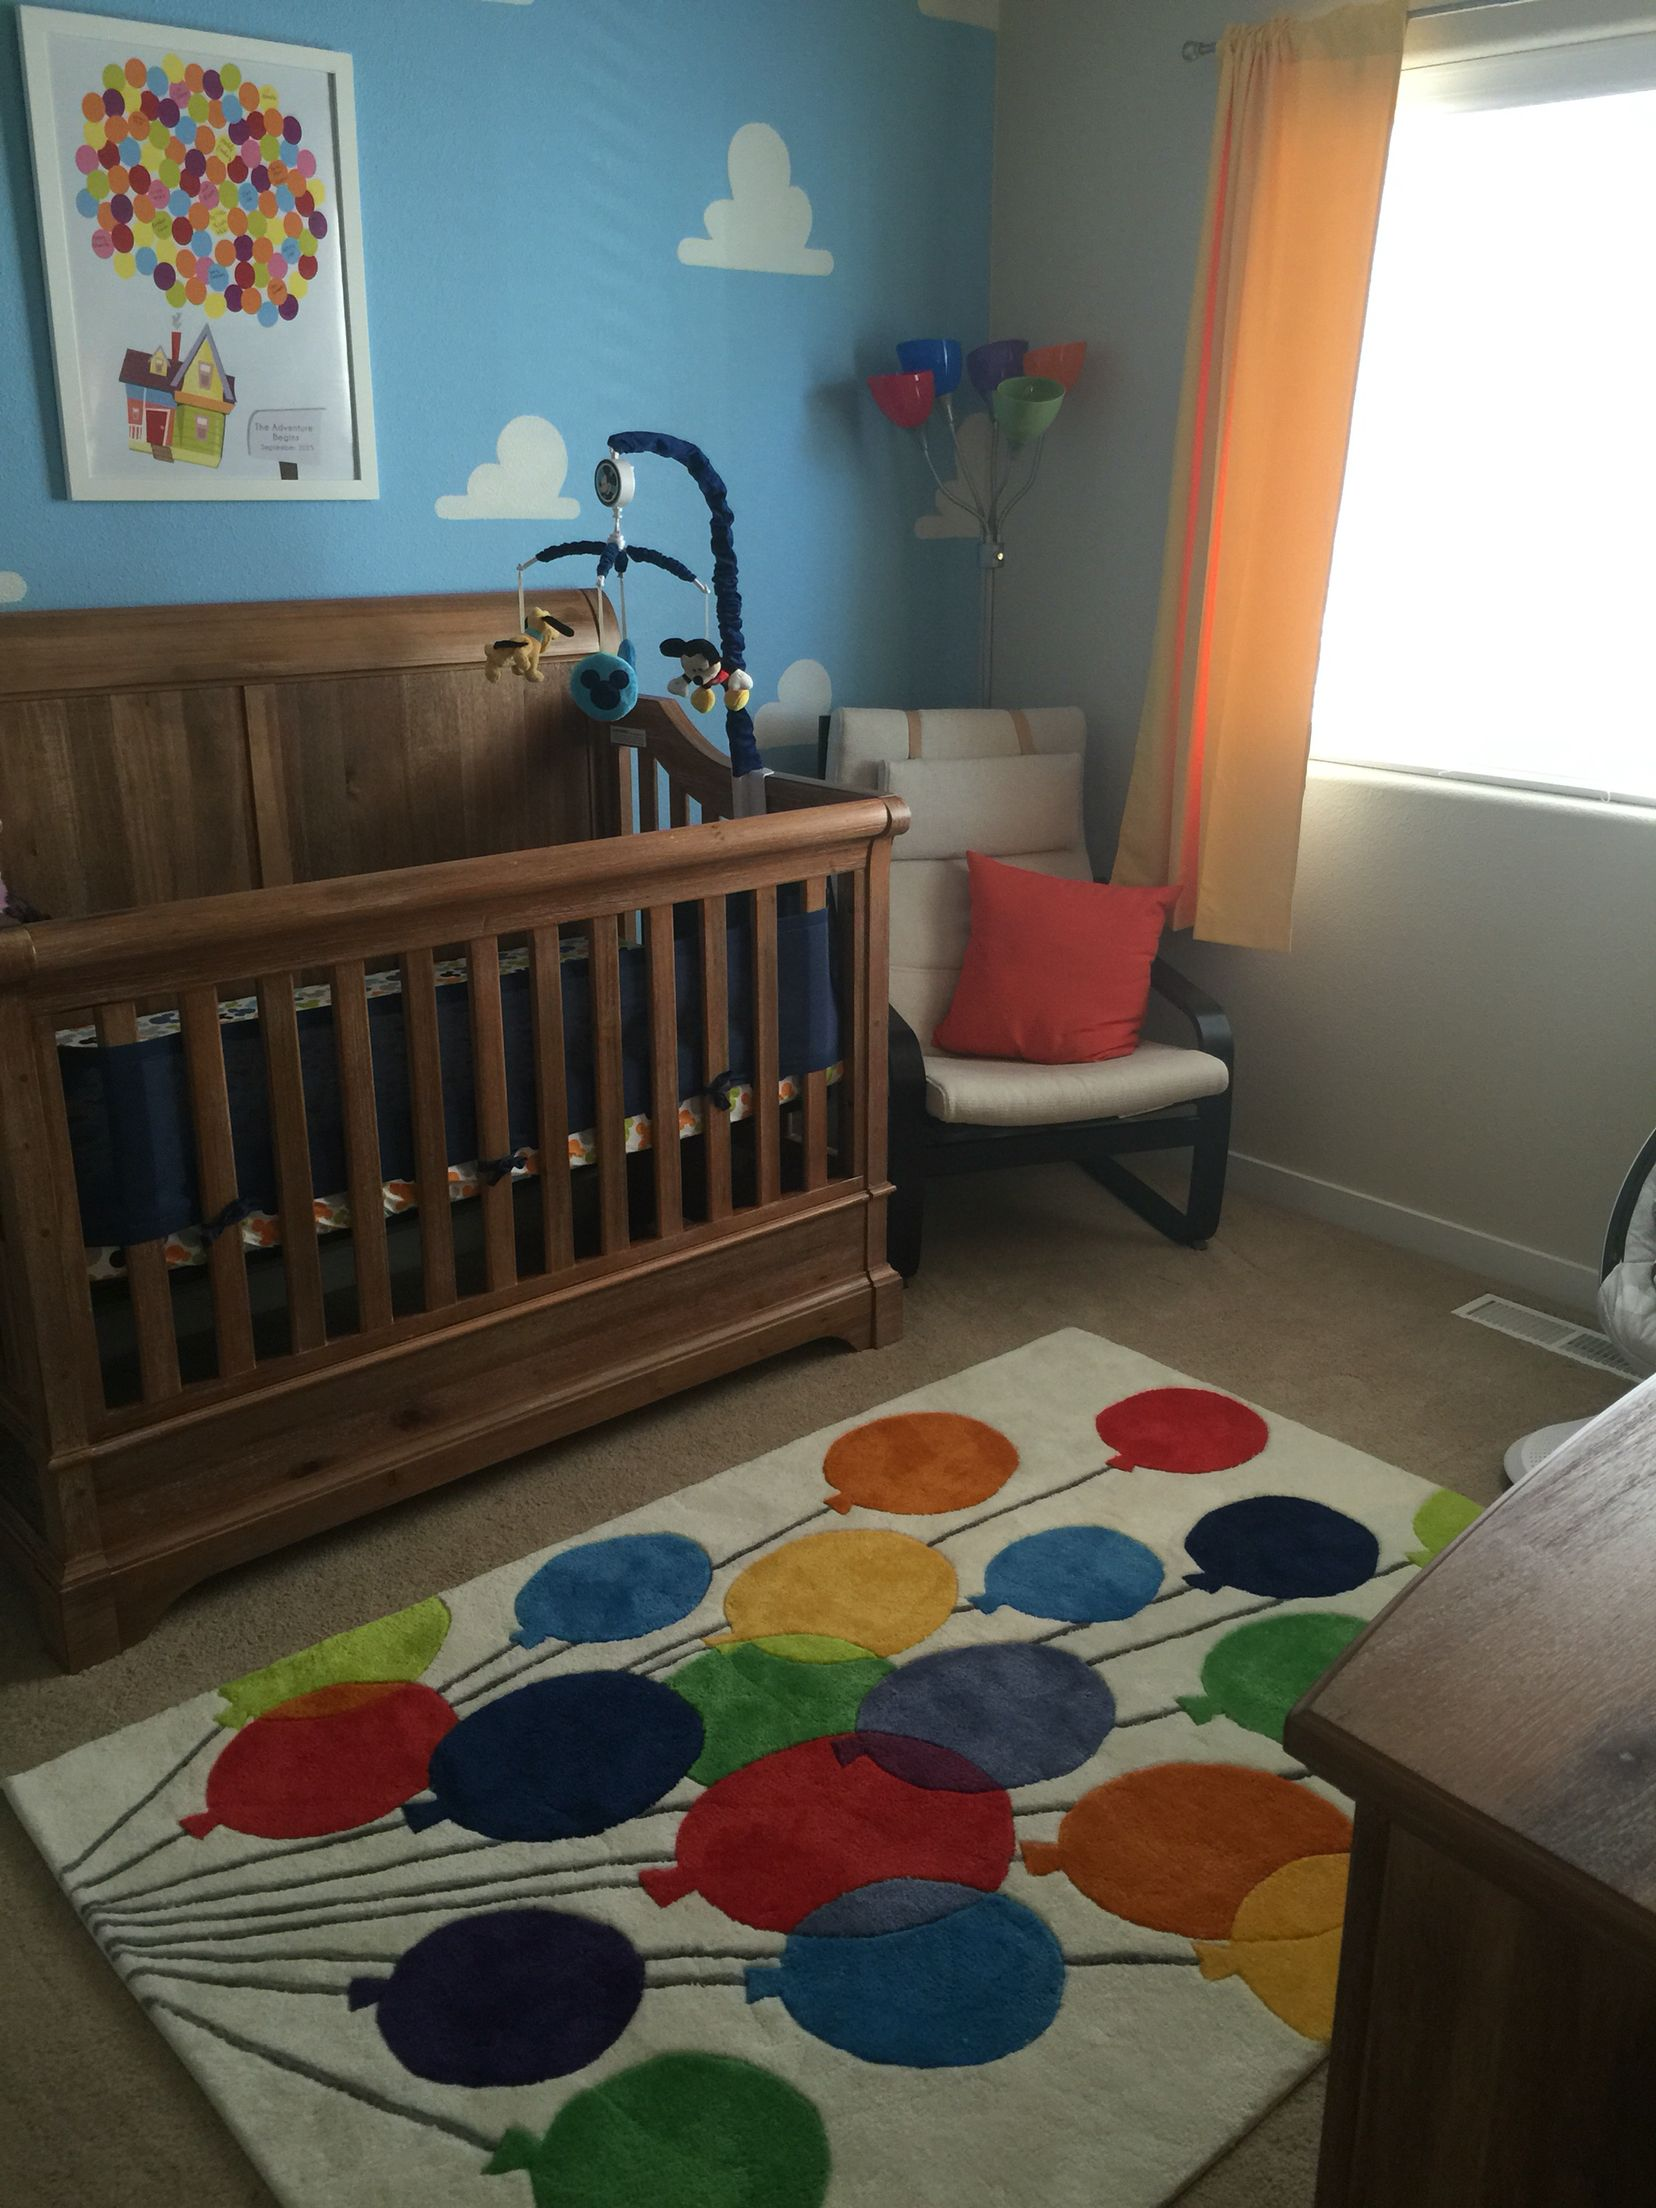 Nurseries in salt lake city - Up Themed Nursery With Cloud Wall And Balloon Rug Disney Nursery